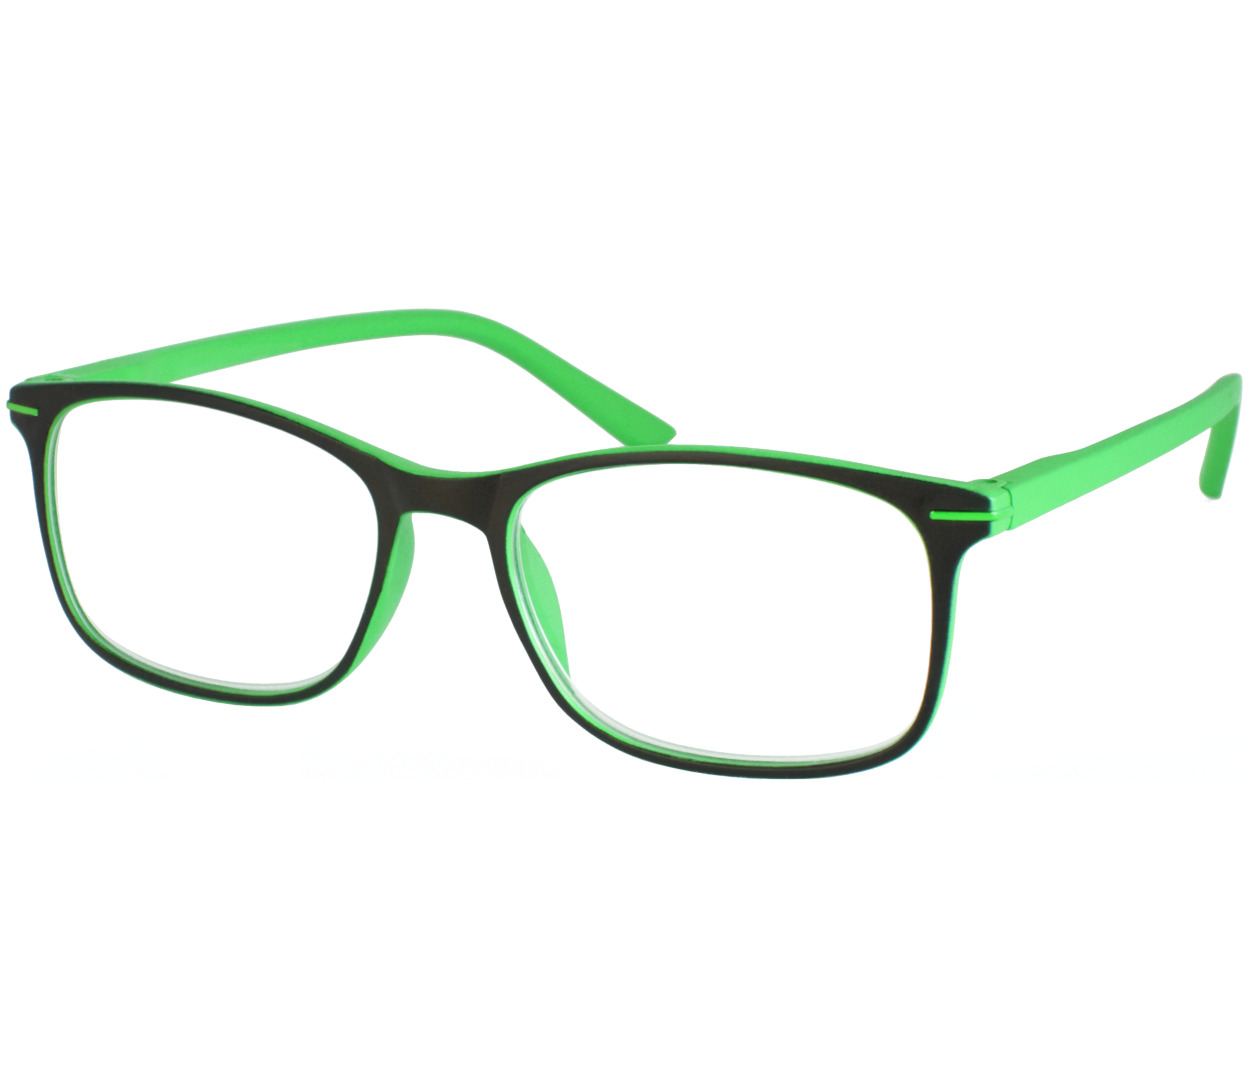 Main Image (Angle) - Jazz (Green) Classic Reading Glasses